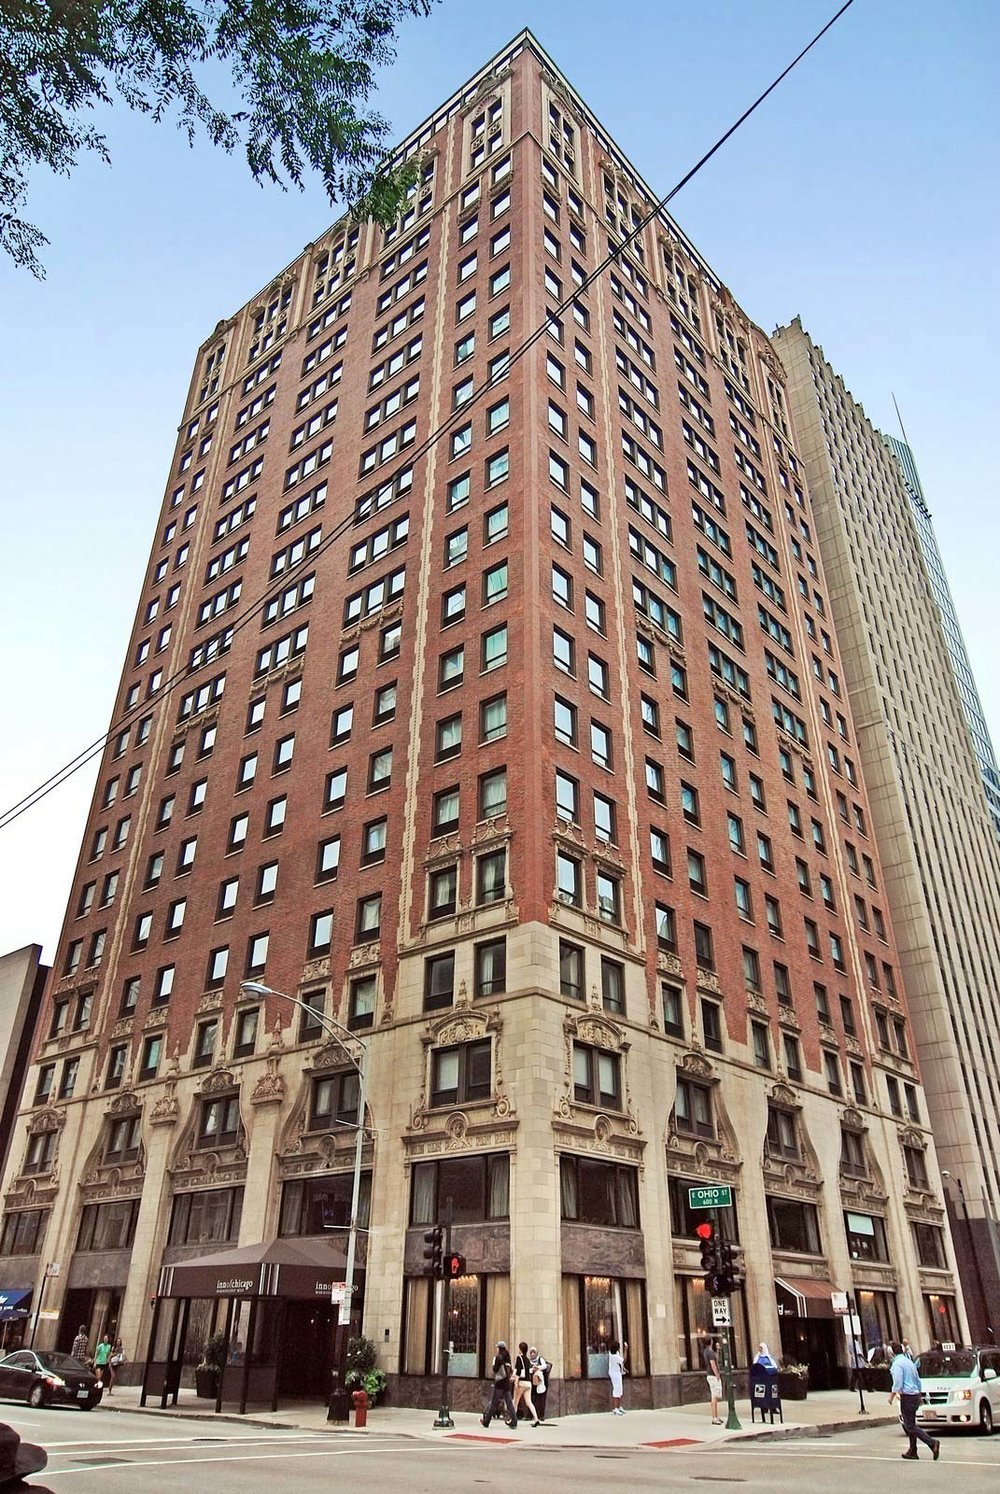 The Hotel St. Clair is now the Inn of Chicago, 2016.